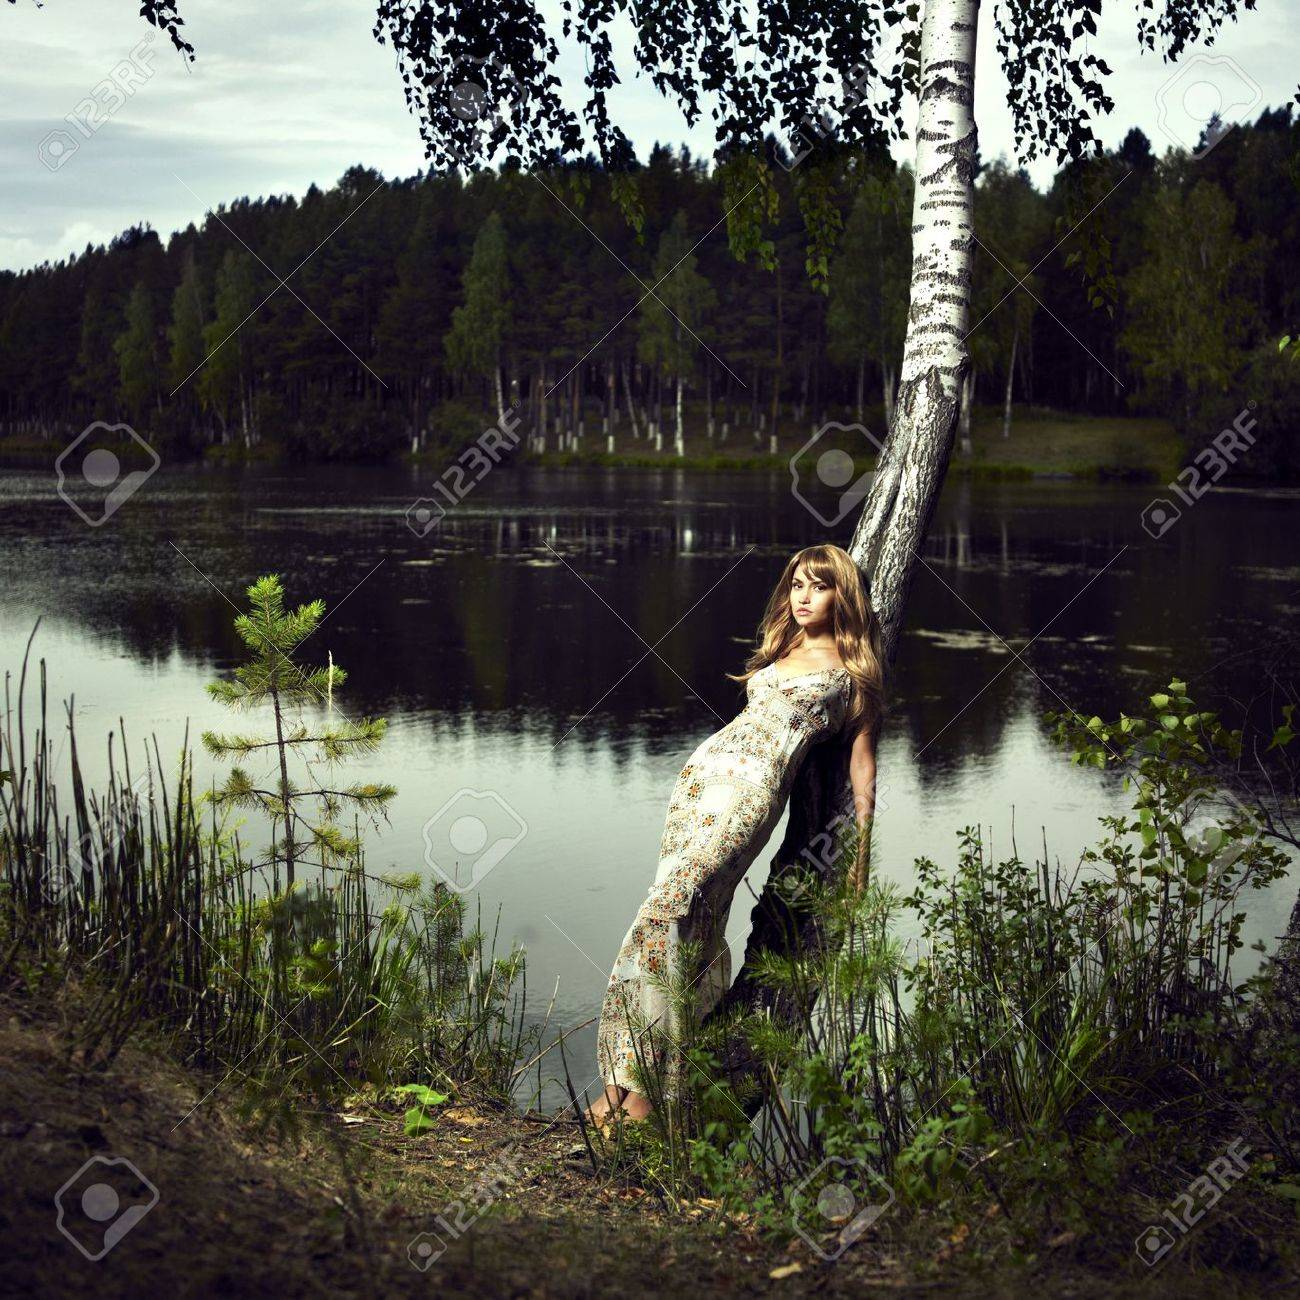 Portrait of romantic girl at Forest River Stock Photo - 7705991